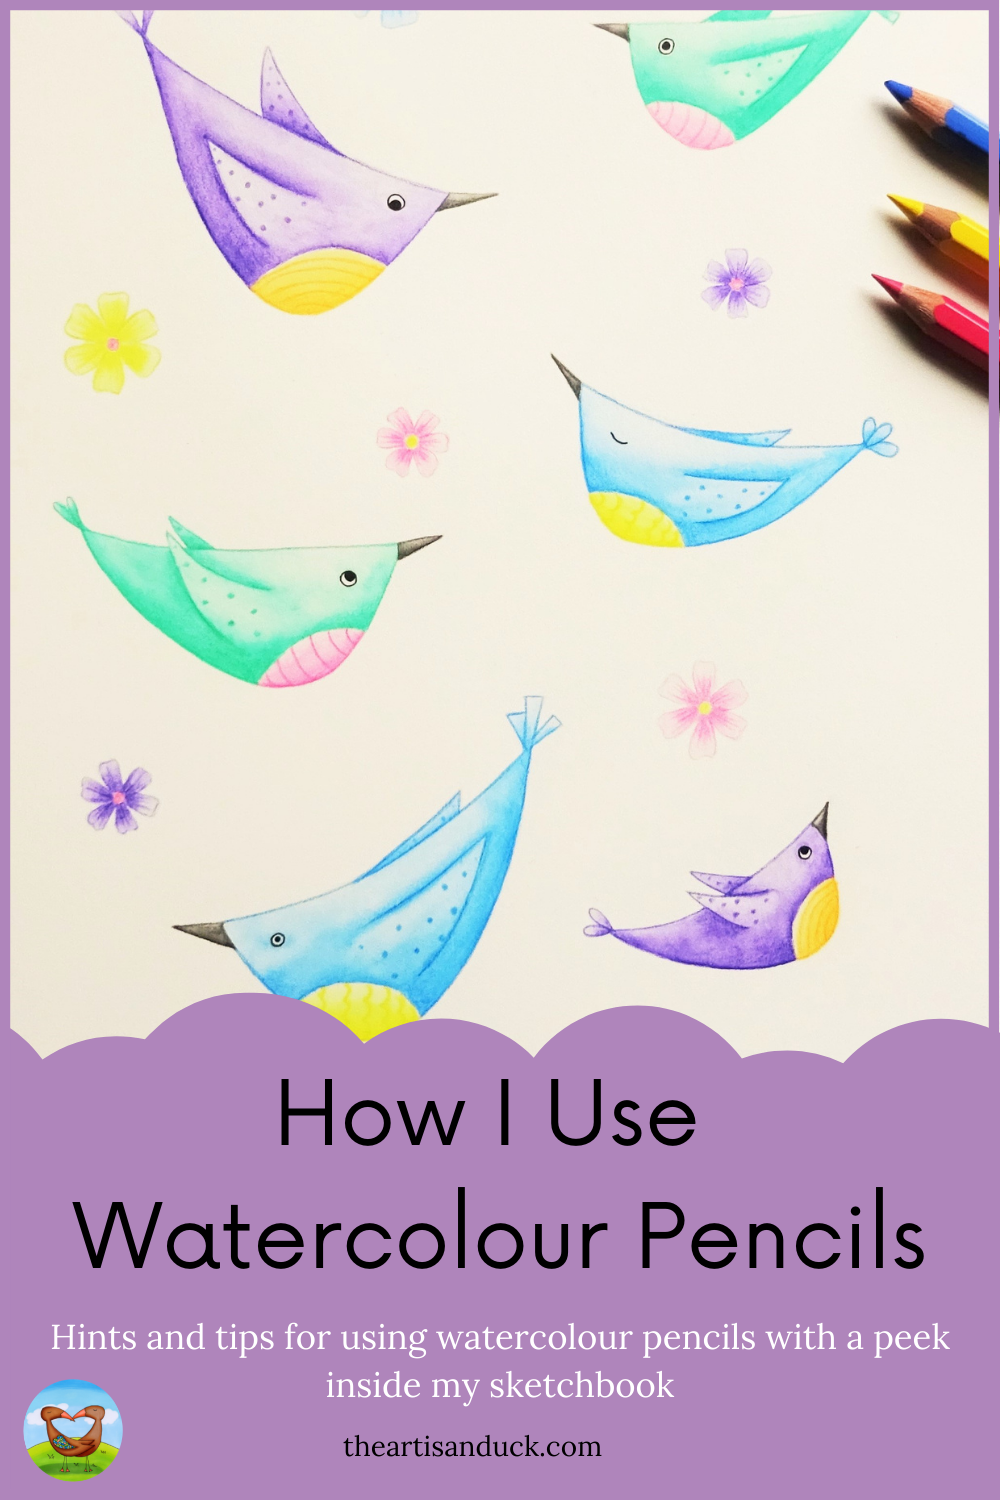 An illustration of colourful birds and flower painted using watercolour pencils